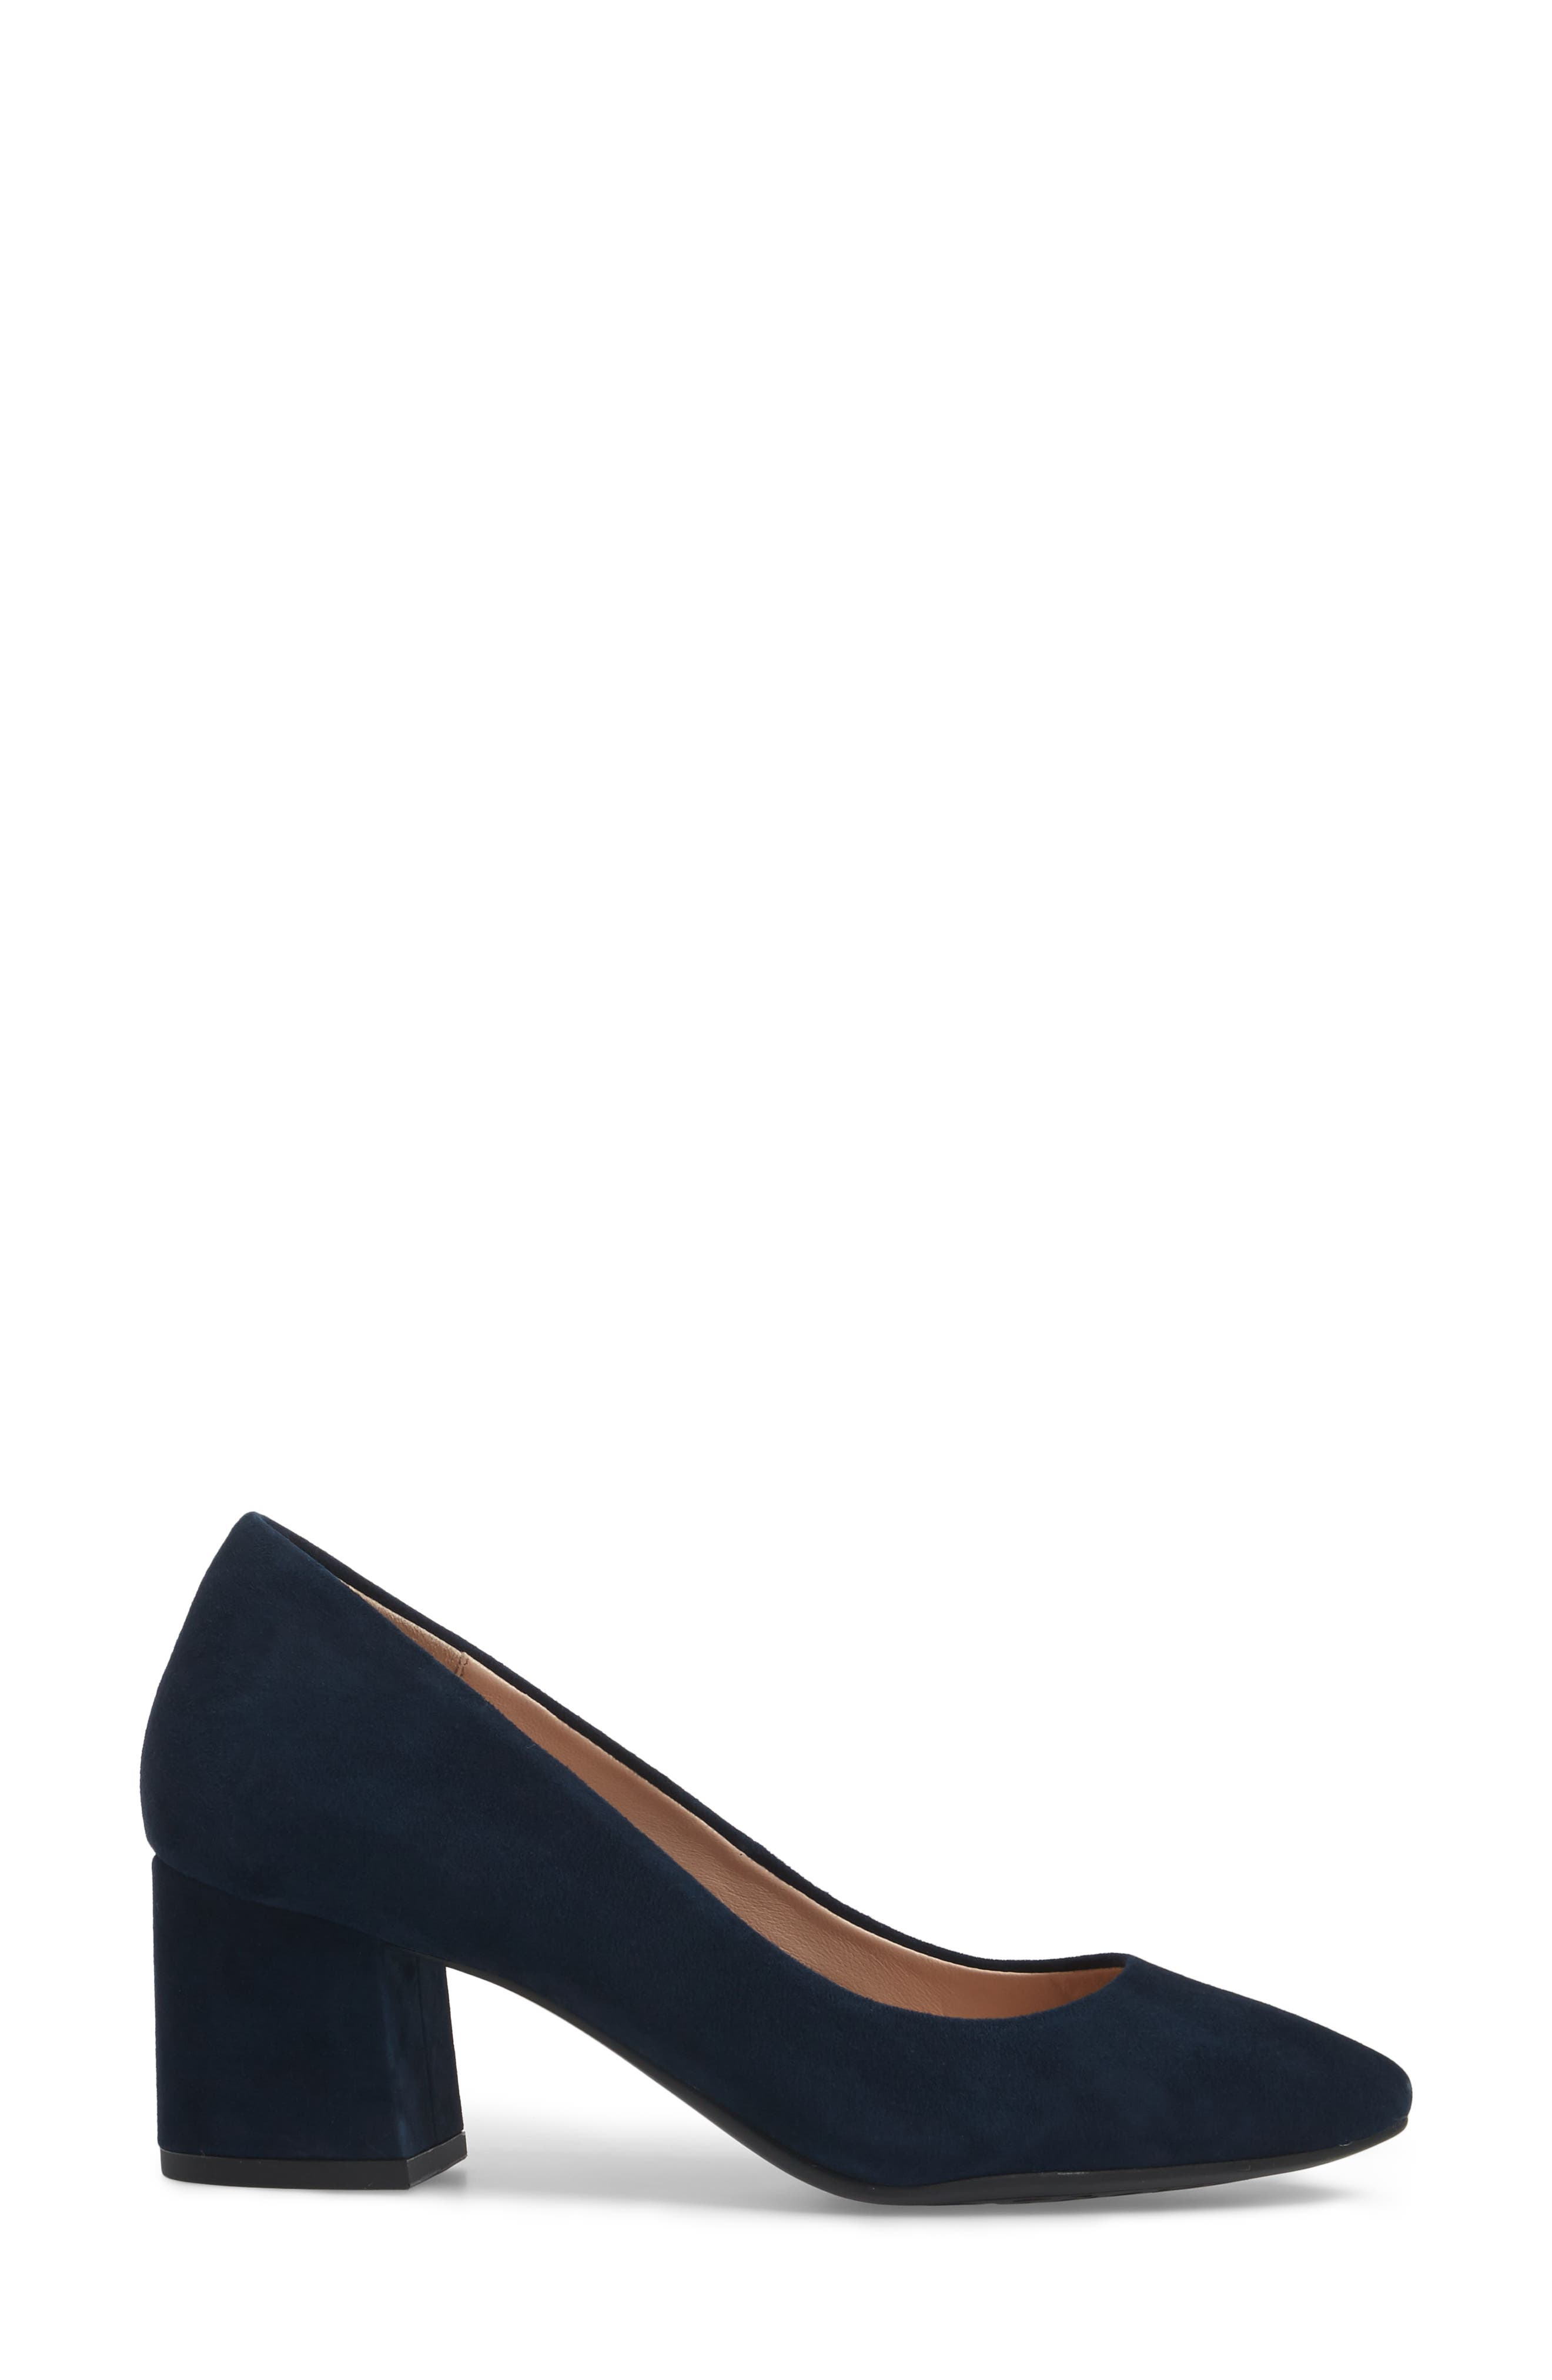 Alternate Image 3  - Taryn Rose Rochelle Block Heel Pump (Women)